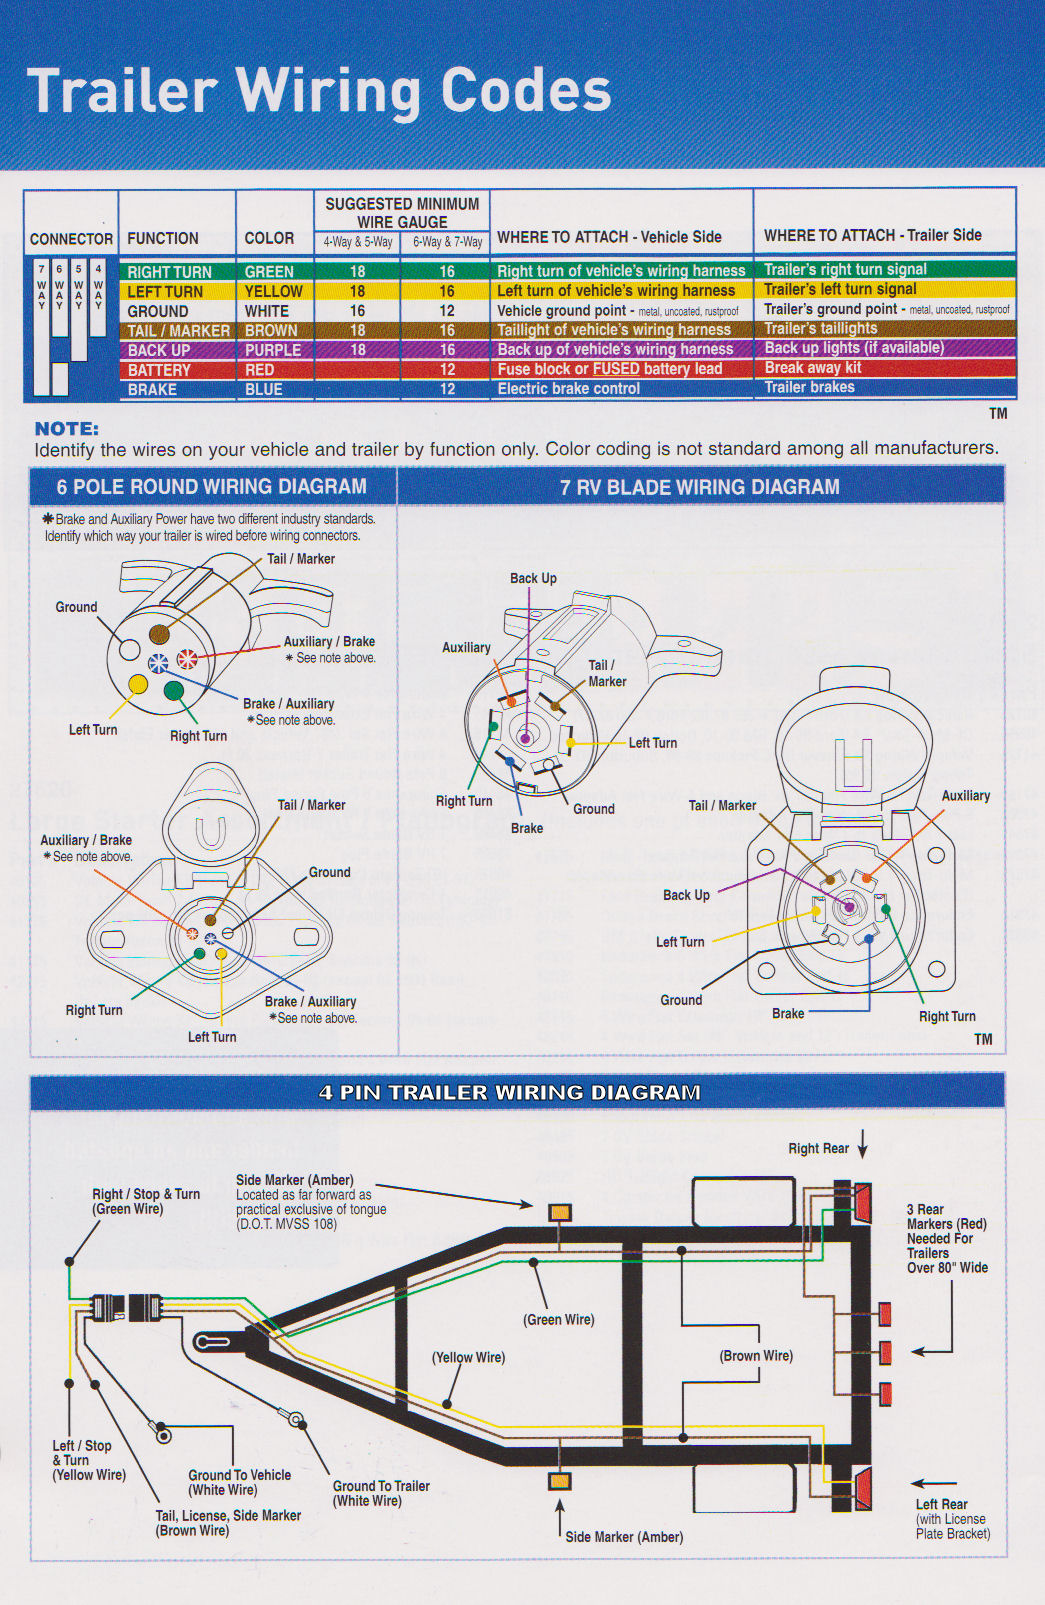 [DIAGRAM_38IU]  AA42D 7 Pin Trailer Ke Wiring Diagram For | Wiring Library | 7 Way Trailer Ke Wiring Diagram |  | Wiring Library